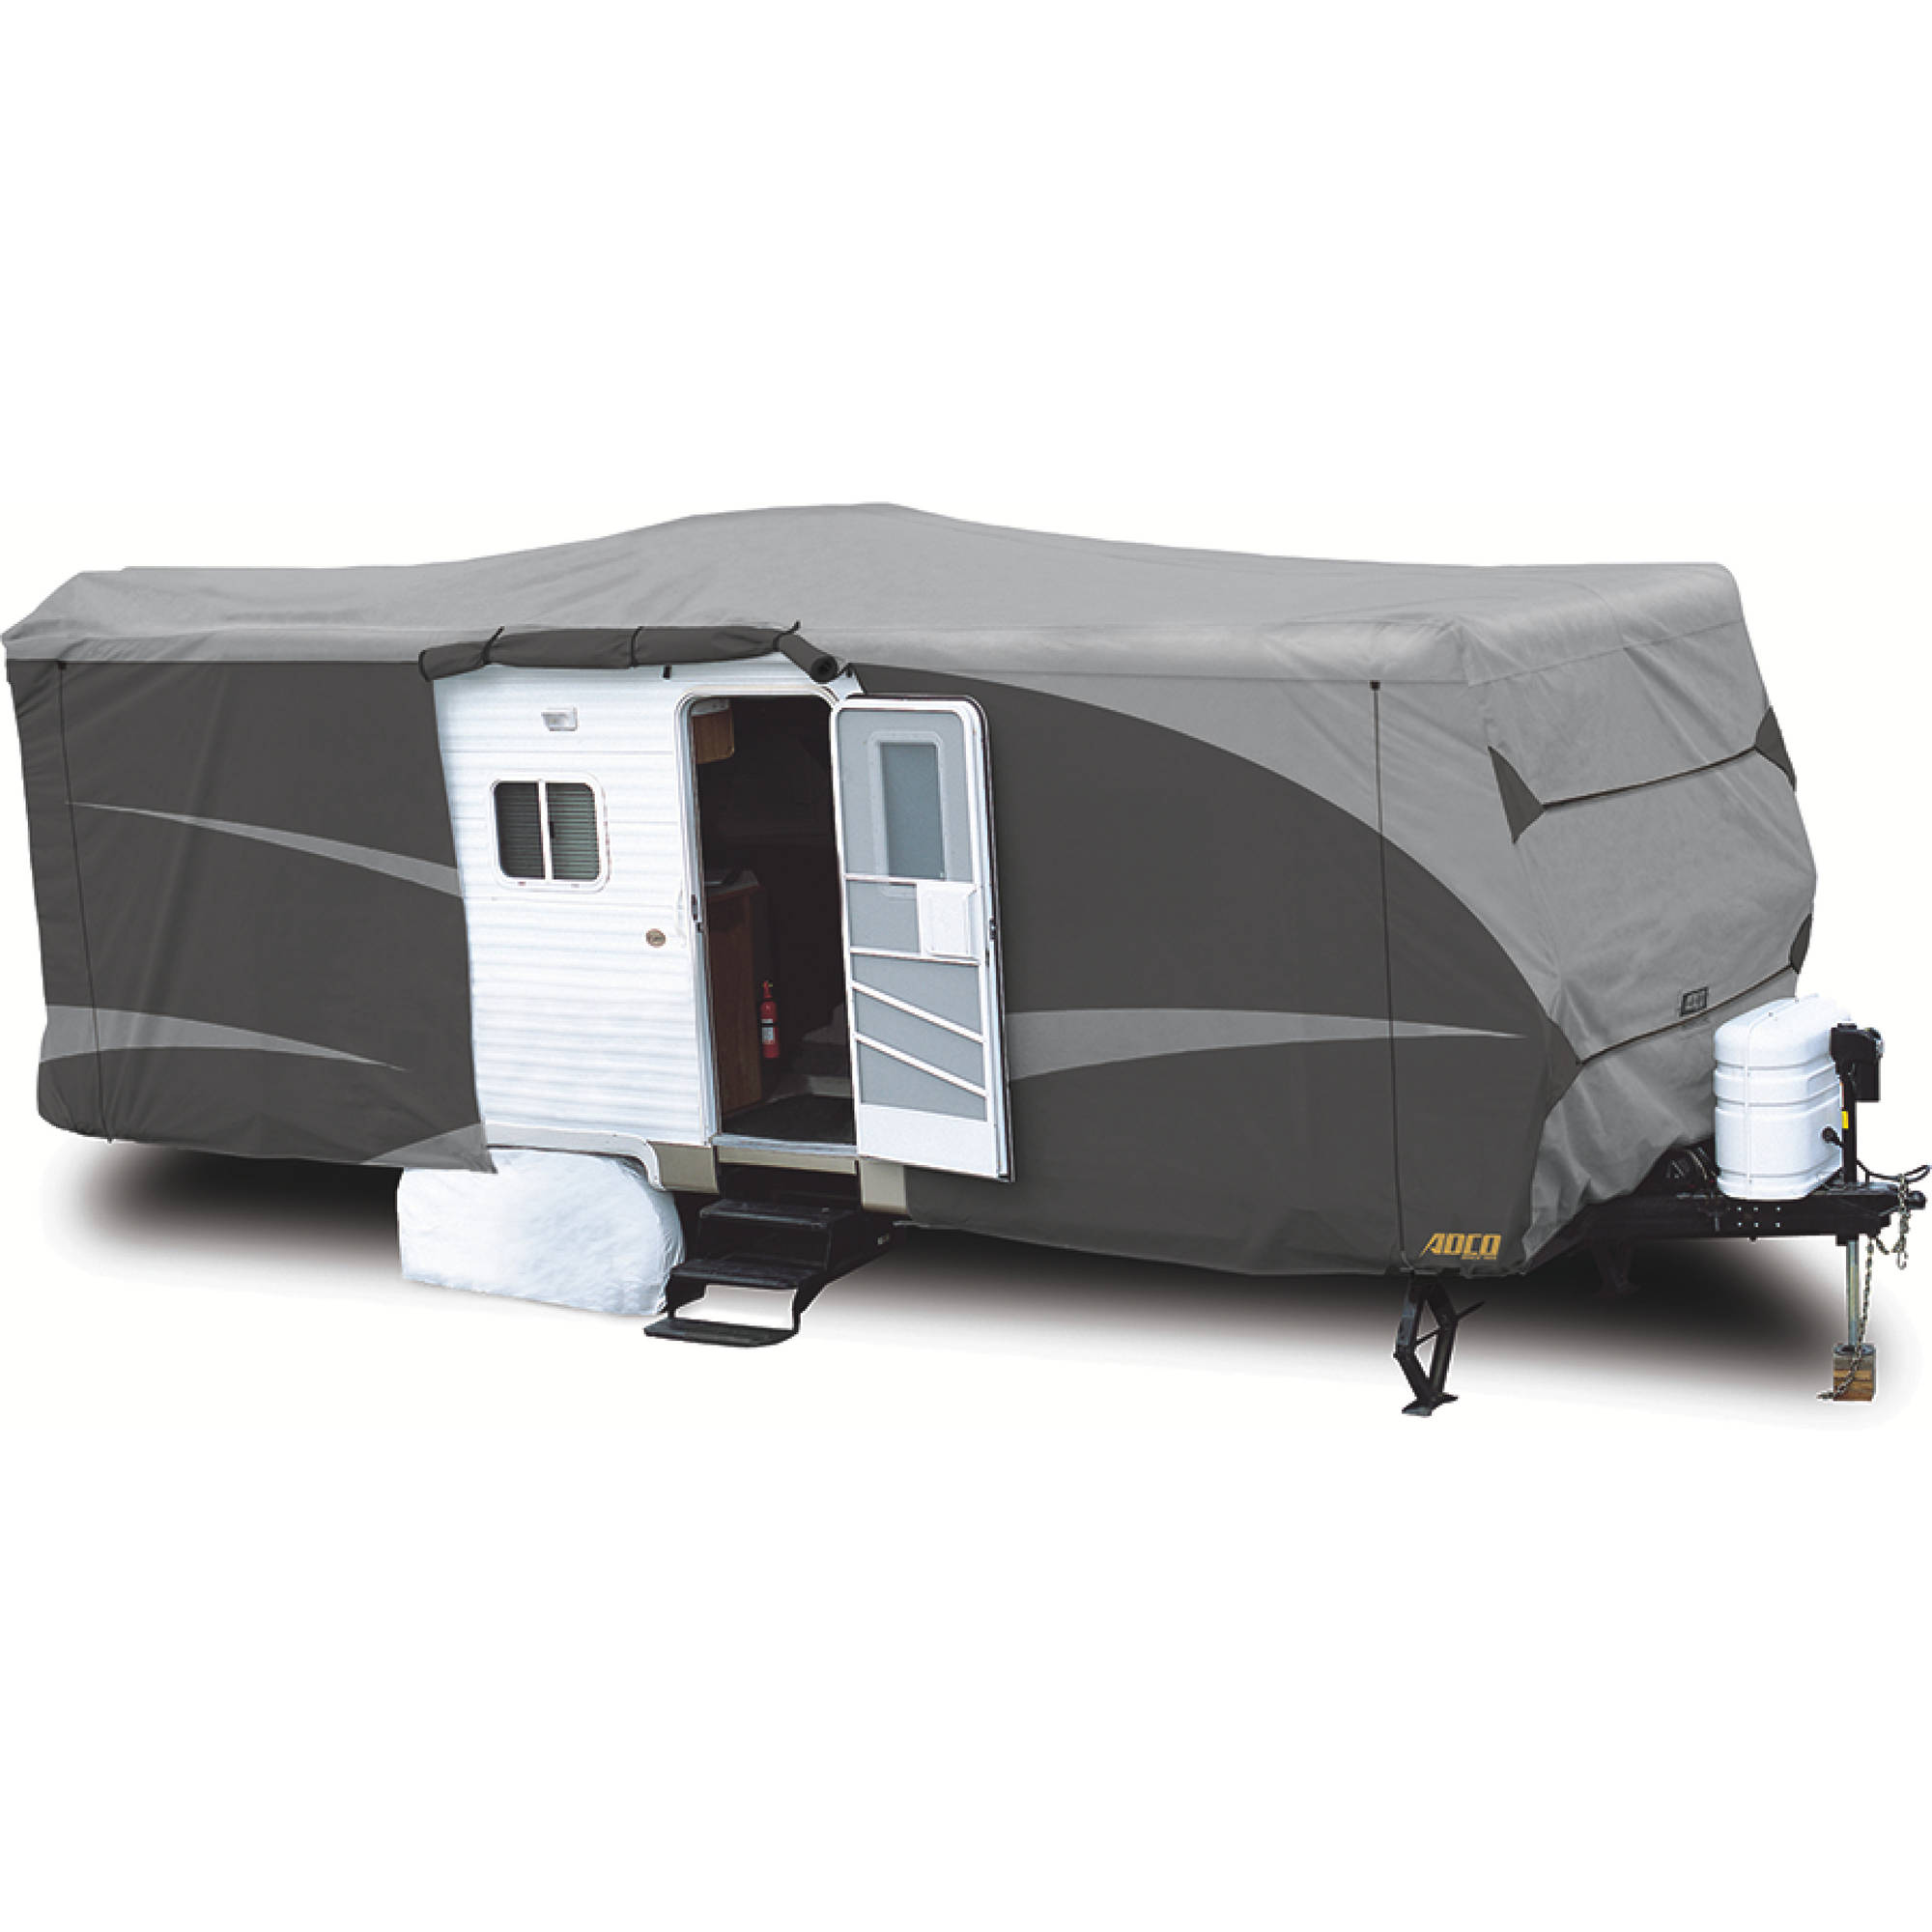 ADCO Travel Trailer Designer Series RV Cover, Gray SFS AquaShed Top/Gray Polypropylene Sides